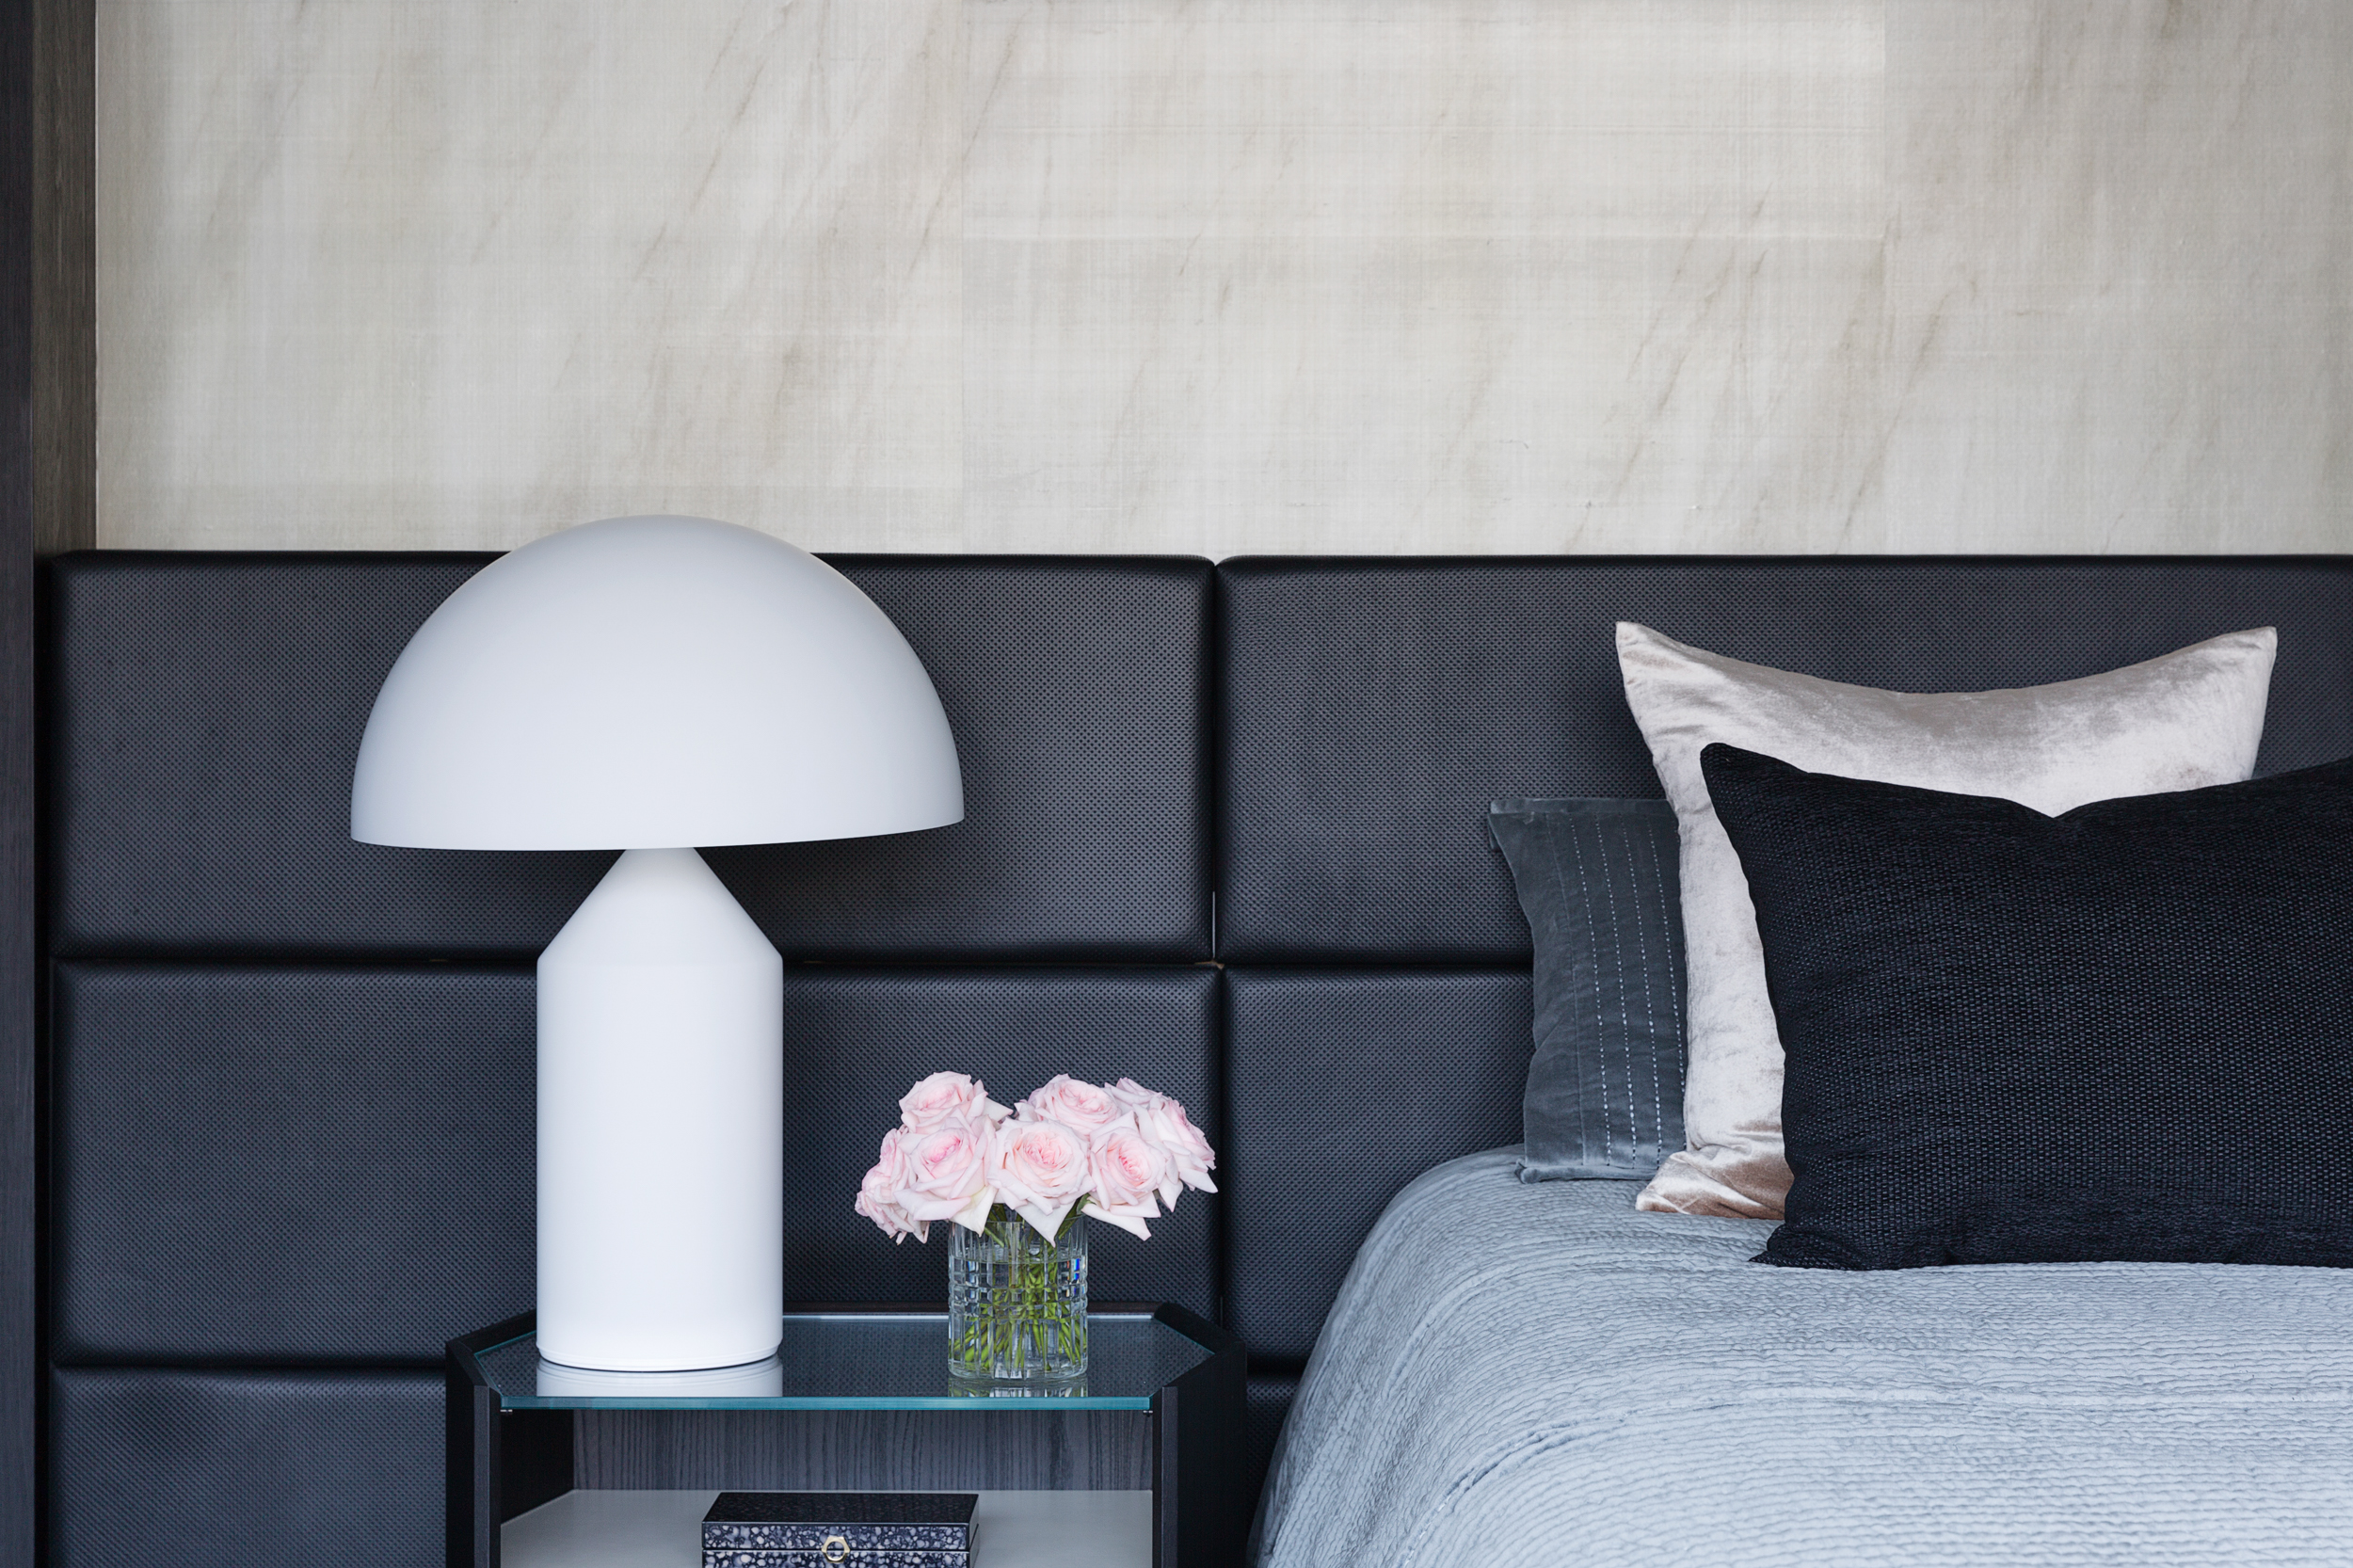 Atollo Lamp by Vico Magistretti lights up our faces and the master suite at our Wharf Crescent project